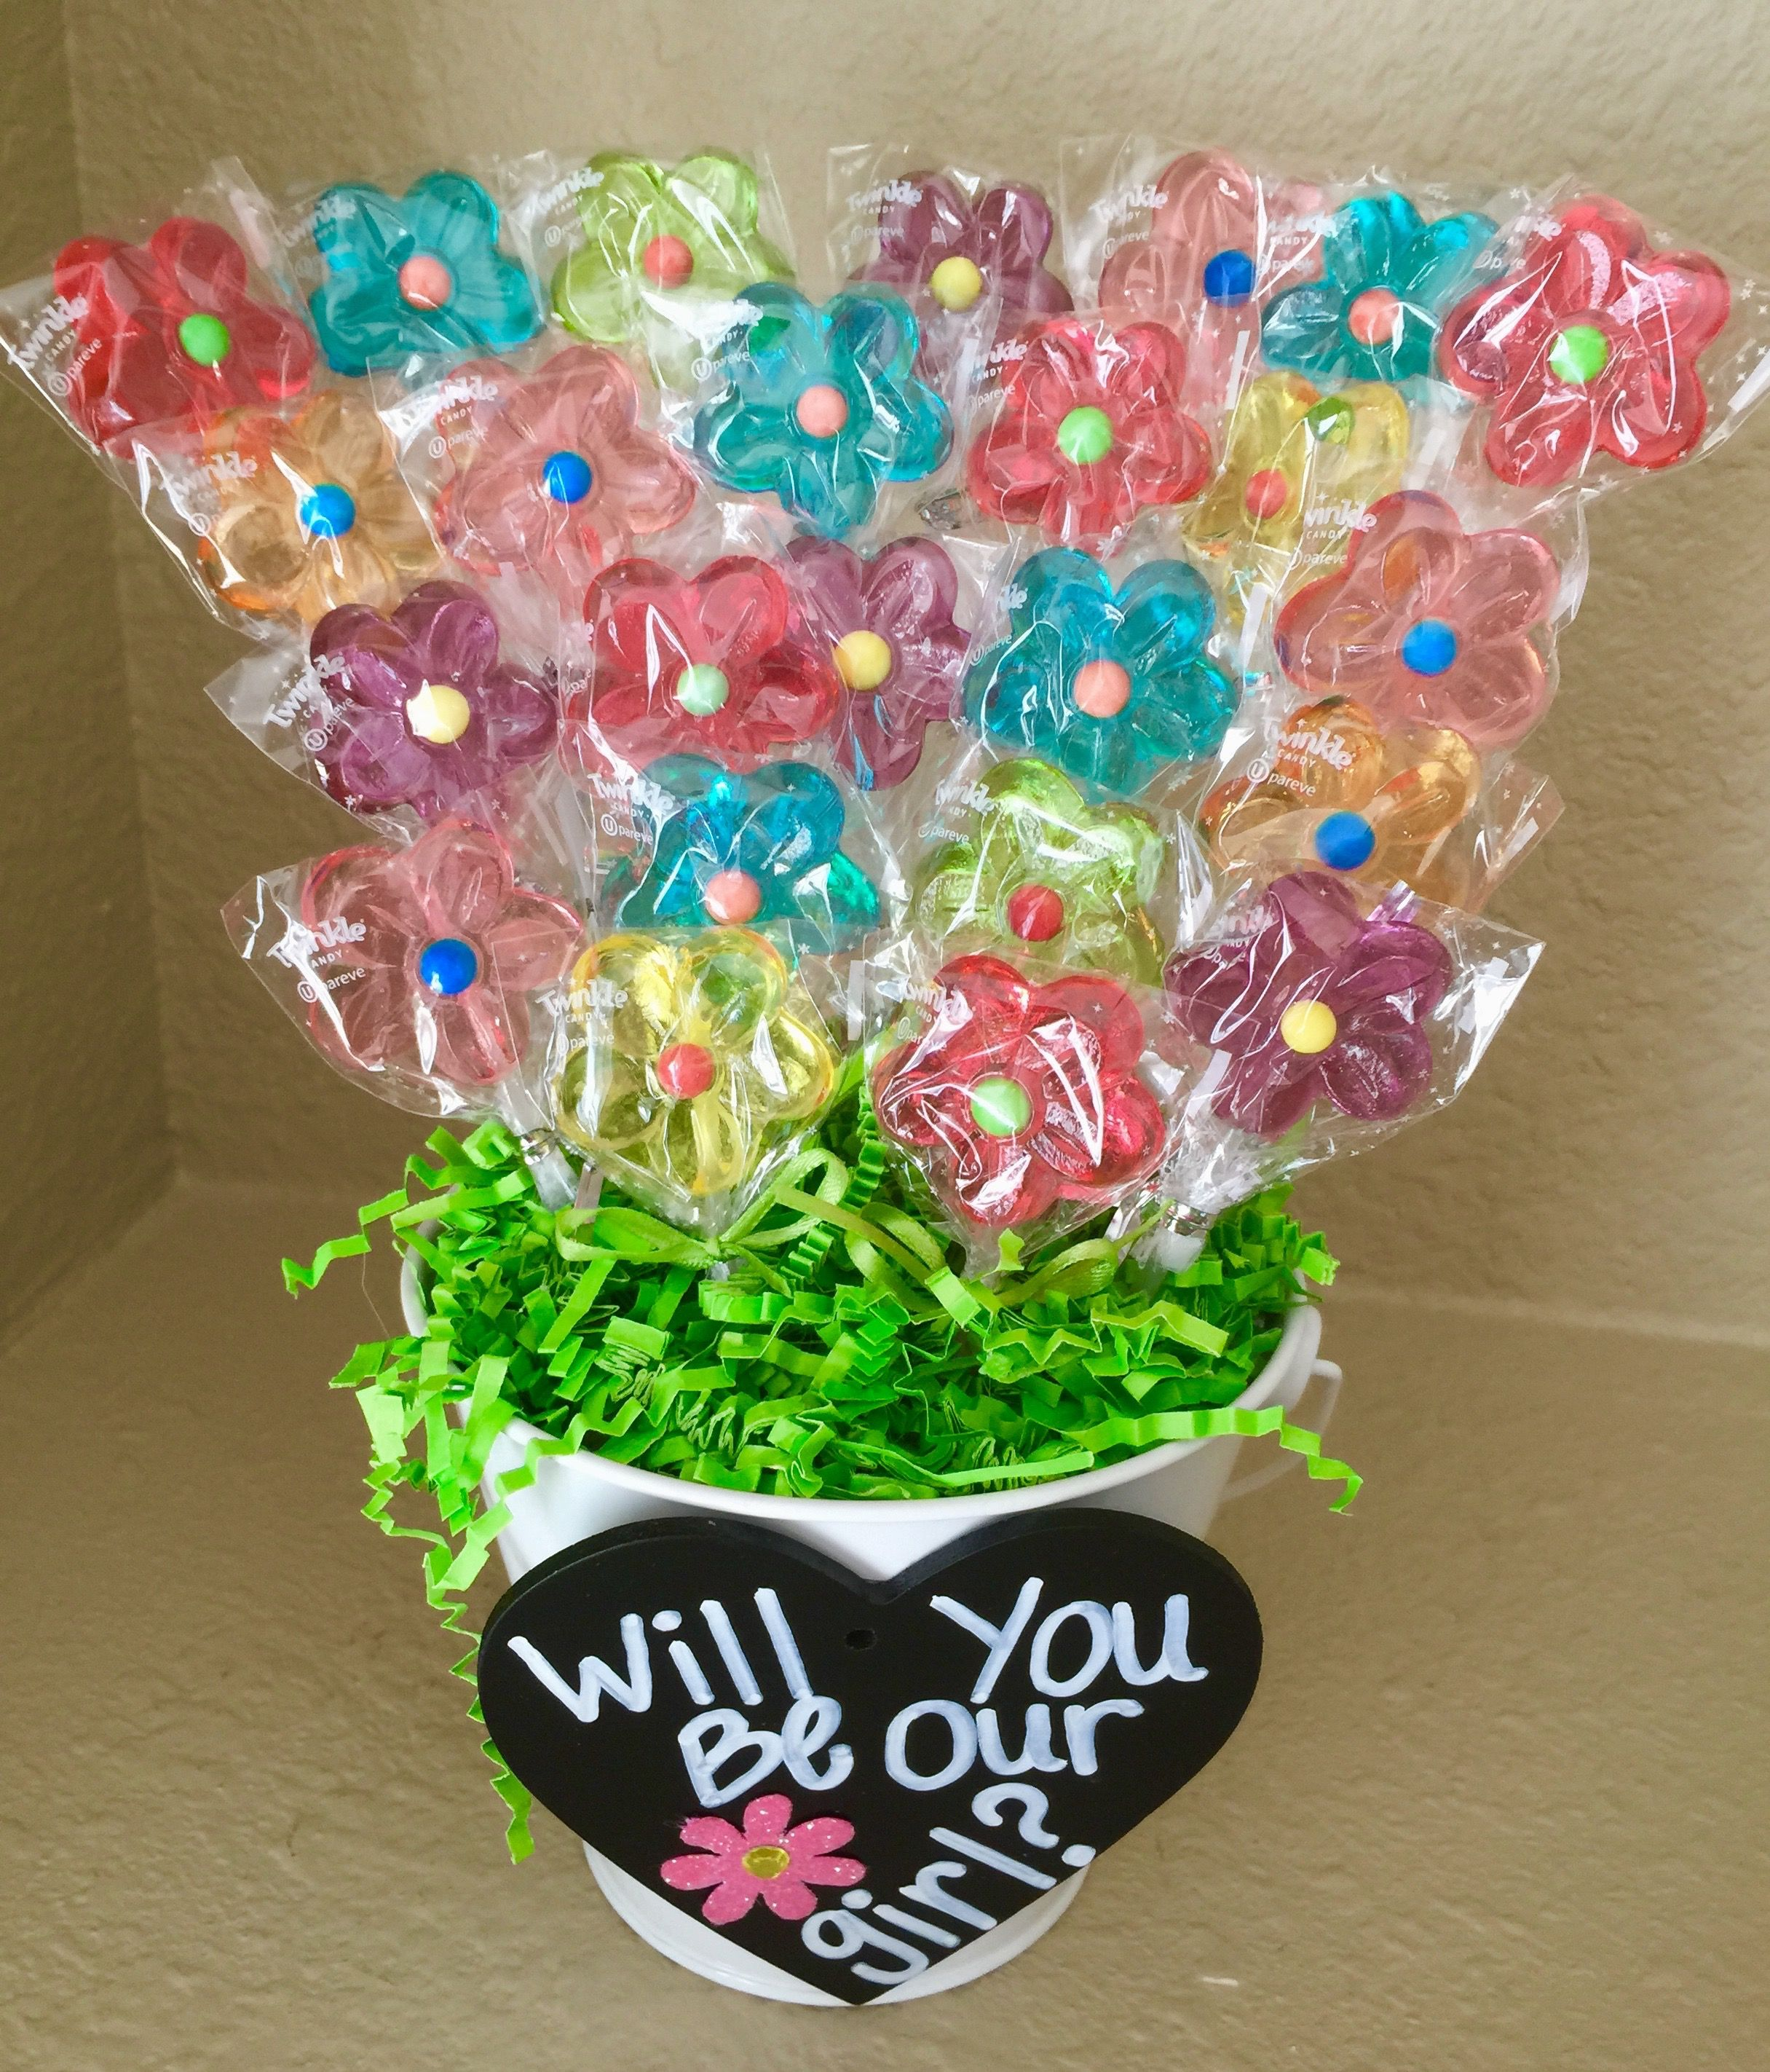 Flower girl and ring bearer proposal Gifts for wedding